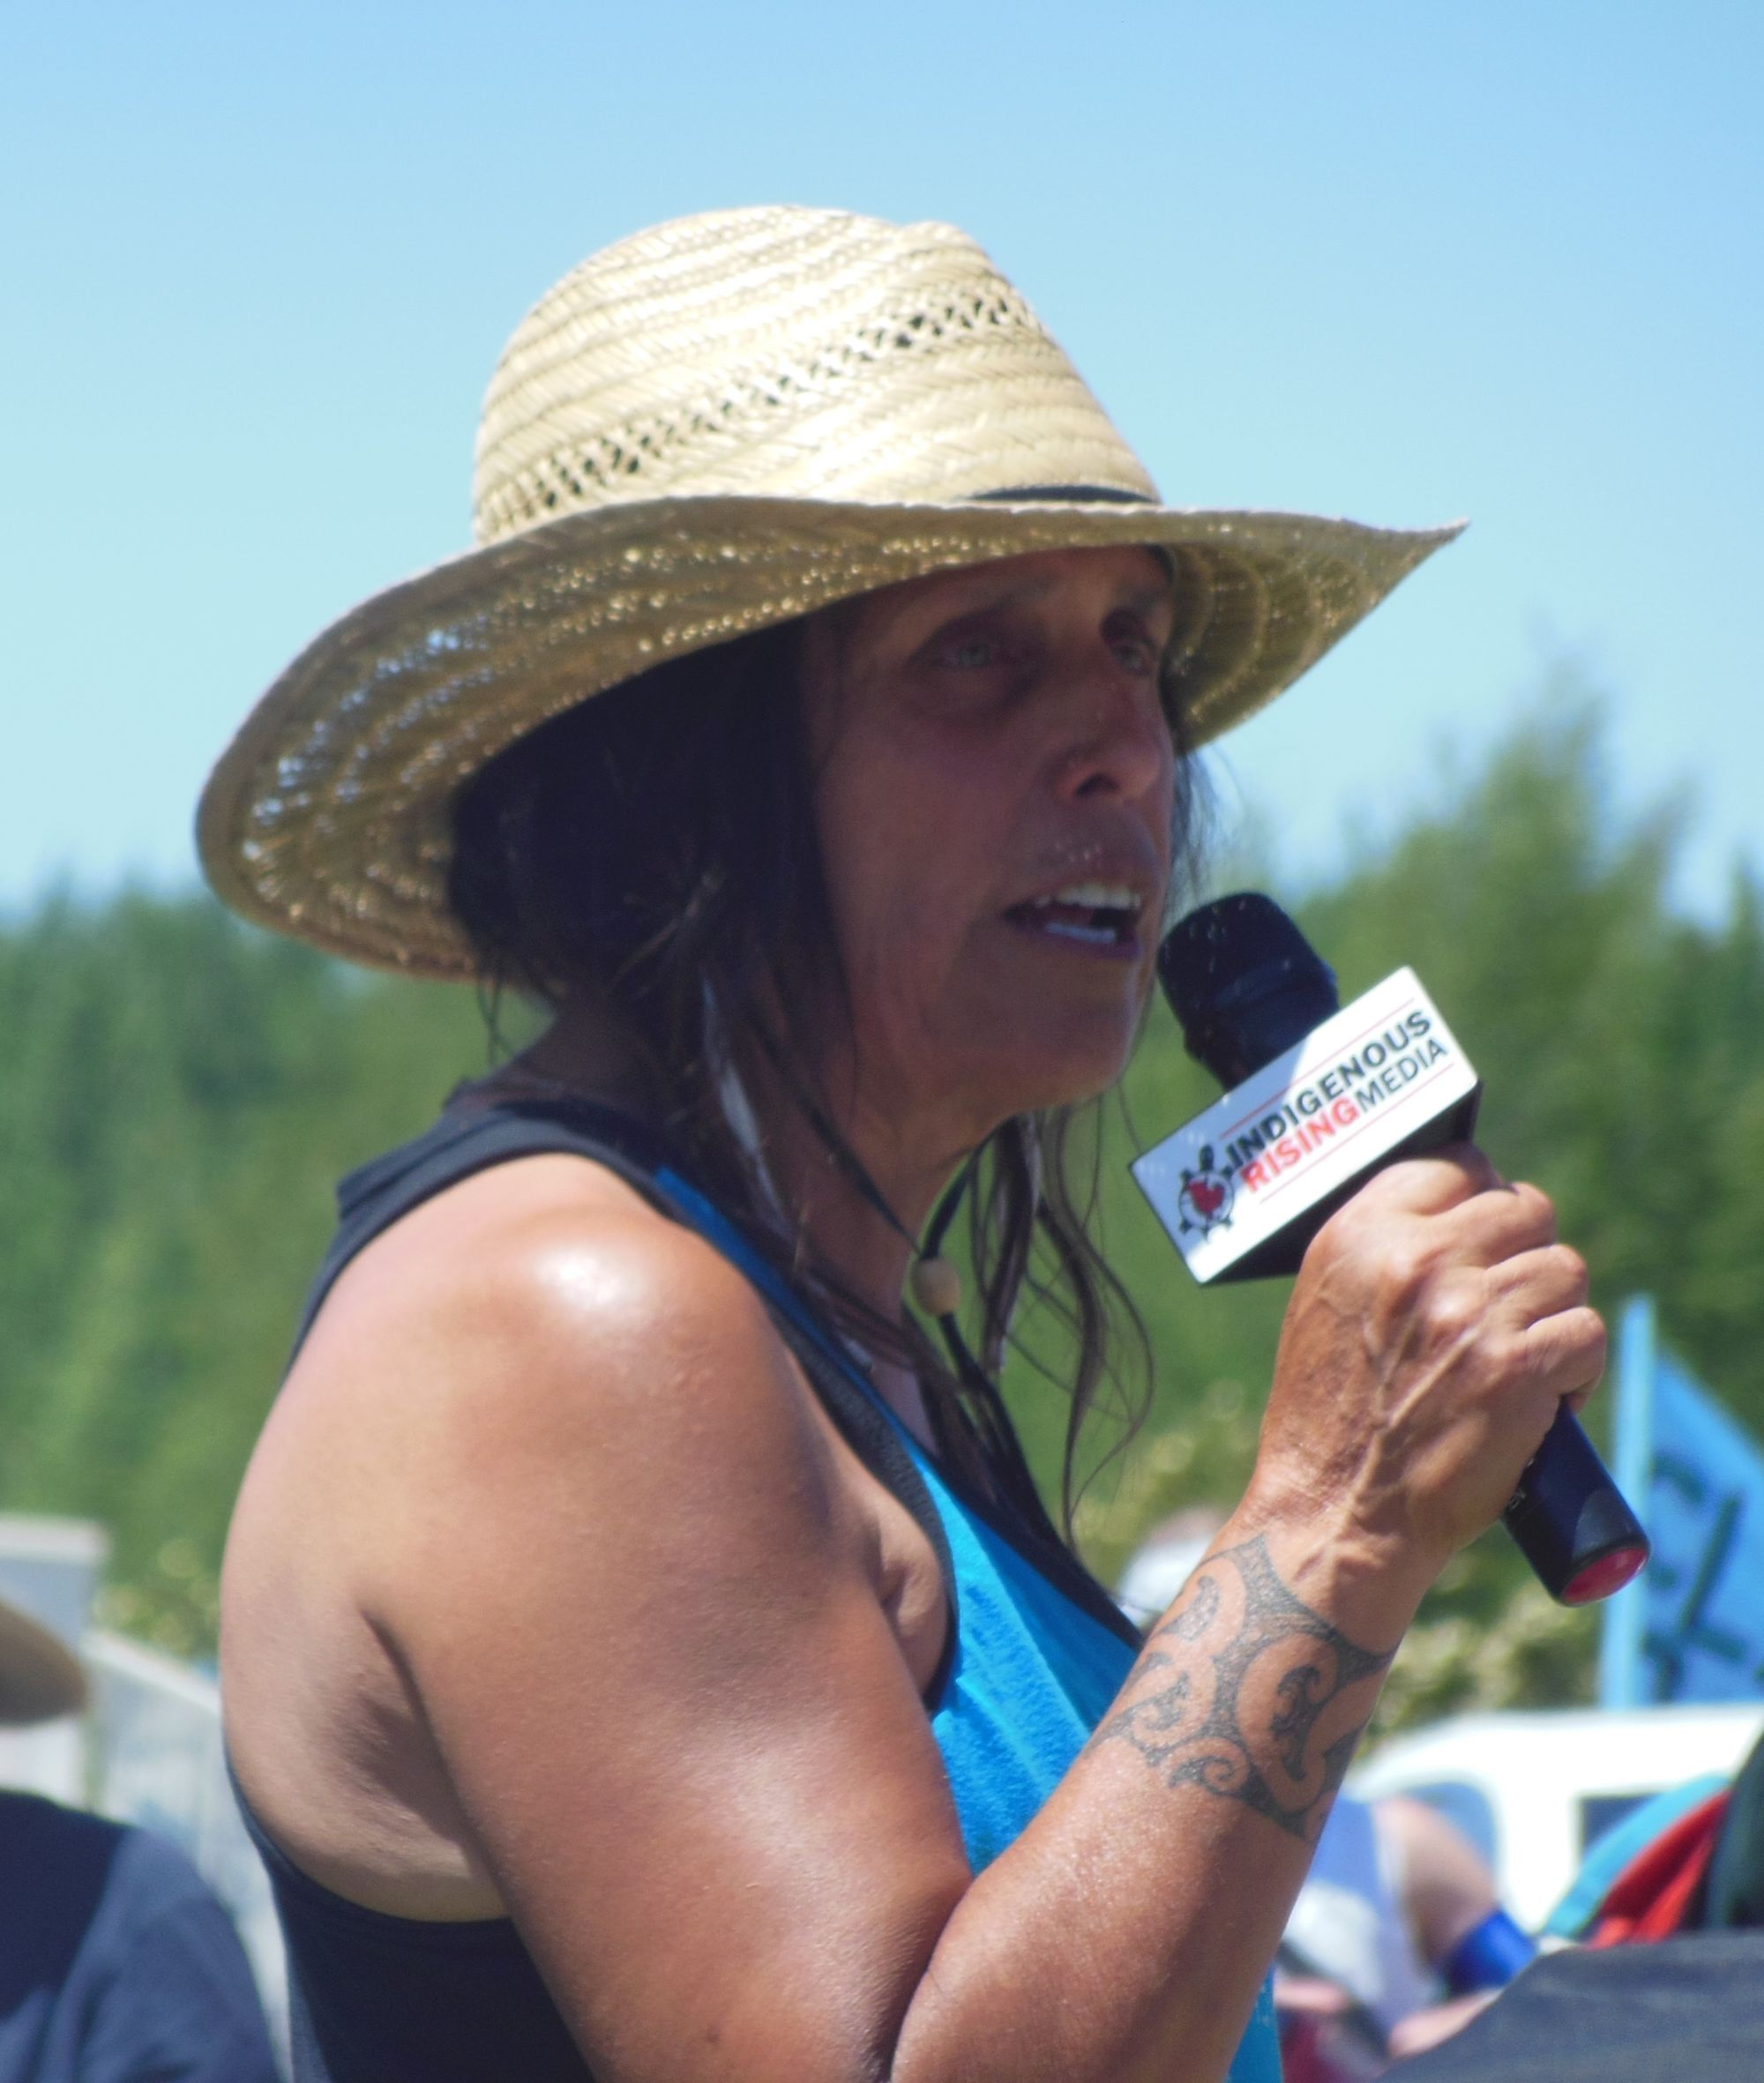 Winona LaDuke and Honor the Earth Activists Arrested for Protest of Oil Pipeline Construction During Severe Drought